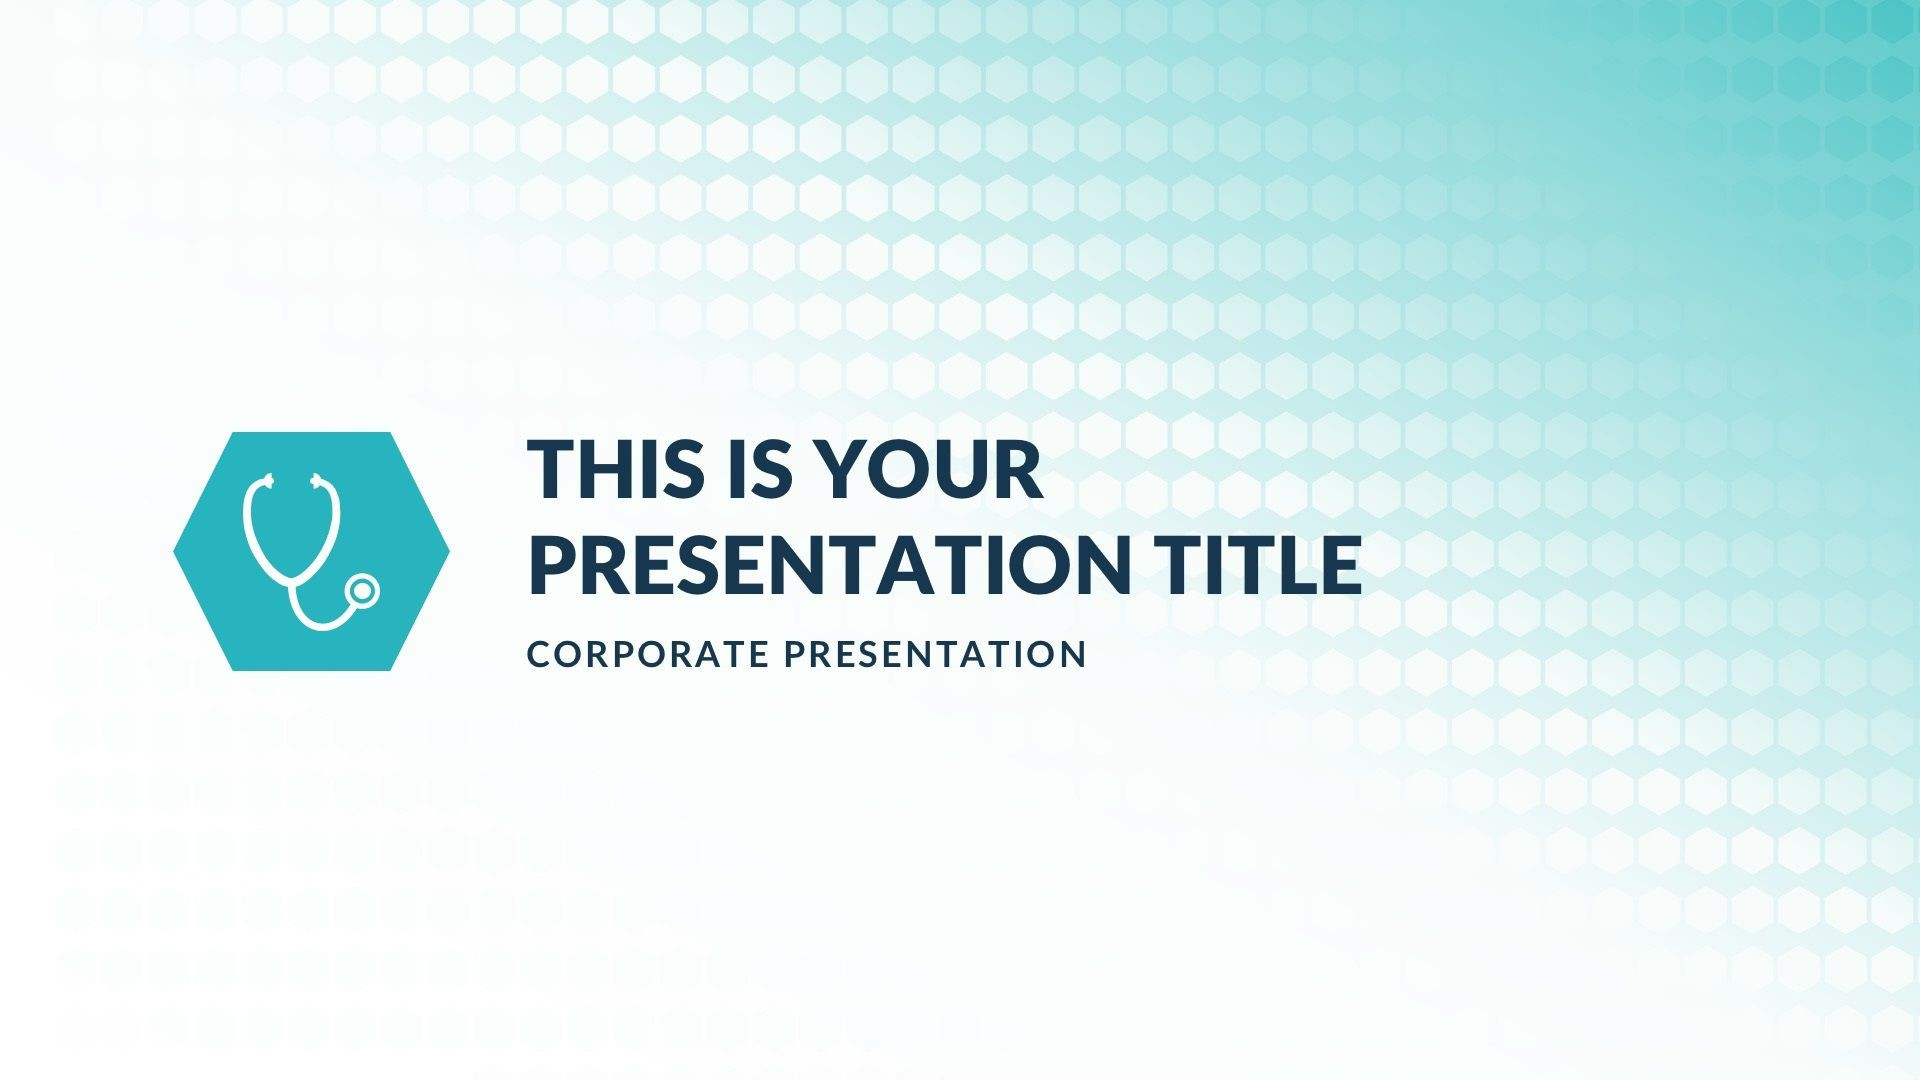 003 Marvelou Powerpoint Presentation Template Free Download Medical Design  Animated1920